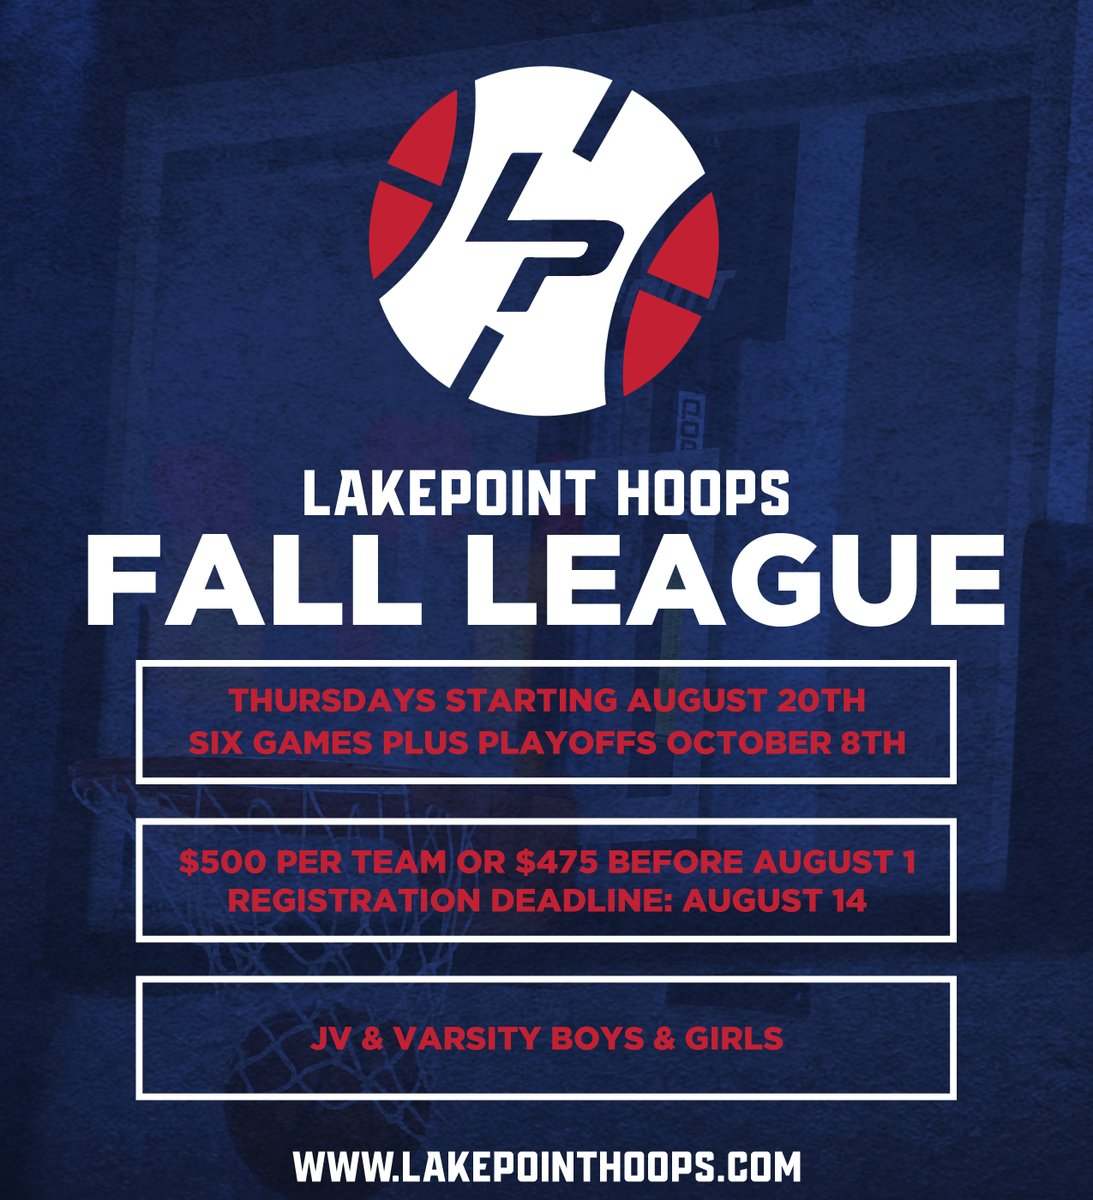 Fall leagues will be more than ever for high school teams preparing for the upcoming season. Go ahead and lock your program in for the #LakePointHoops Fall League at the @LakePointSports Champions Center. Spots are limited!  https://t.co/x2uZX0FbWB https://t.co/taqdzM7C5t